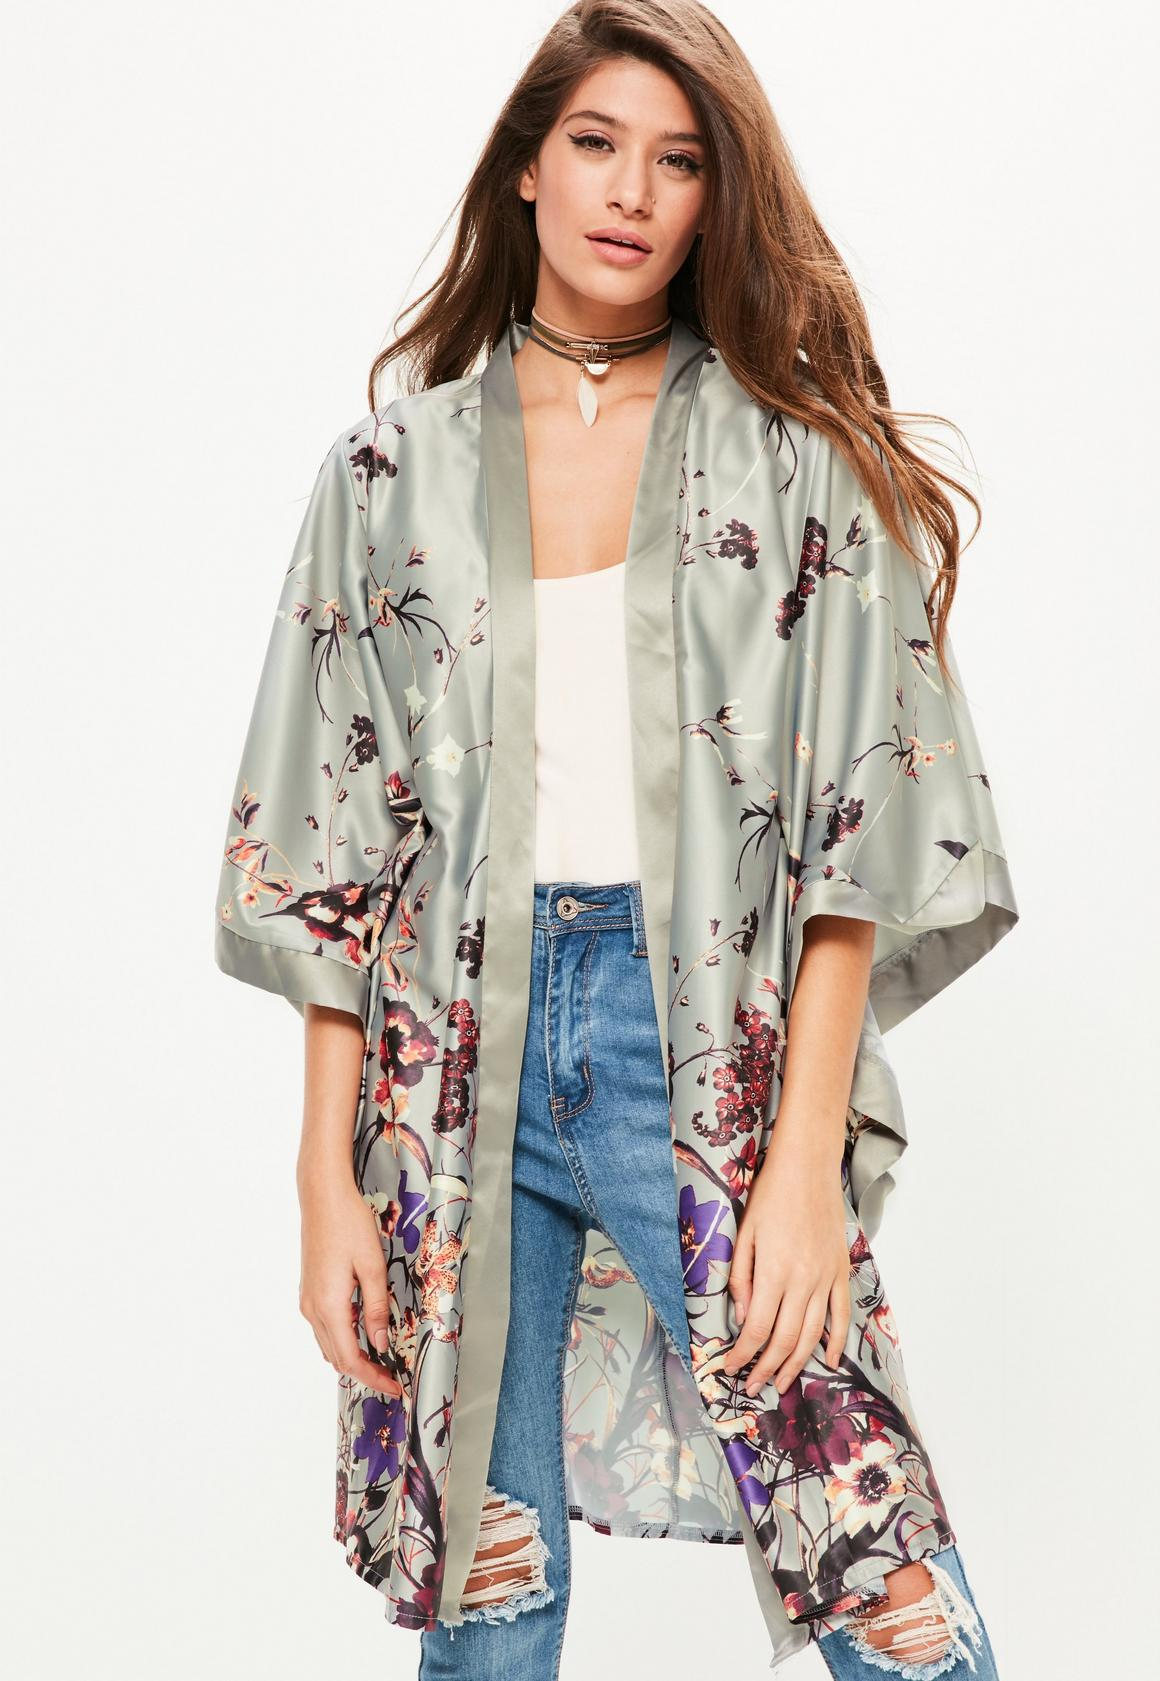 Grey Oriental Printed Kimono Sleeve Duster Jacket | Missguided ...